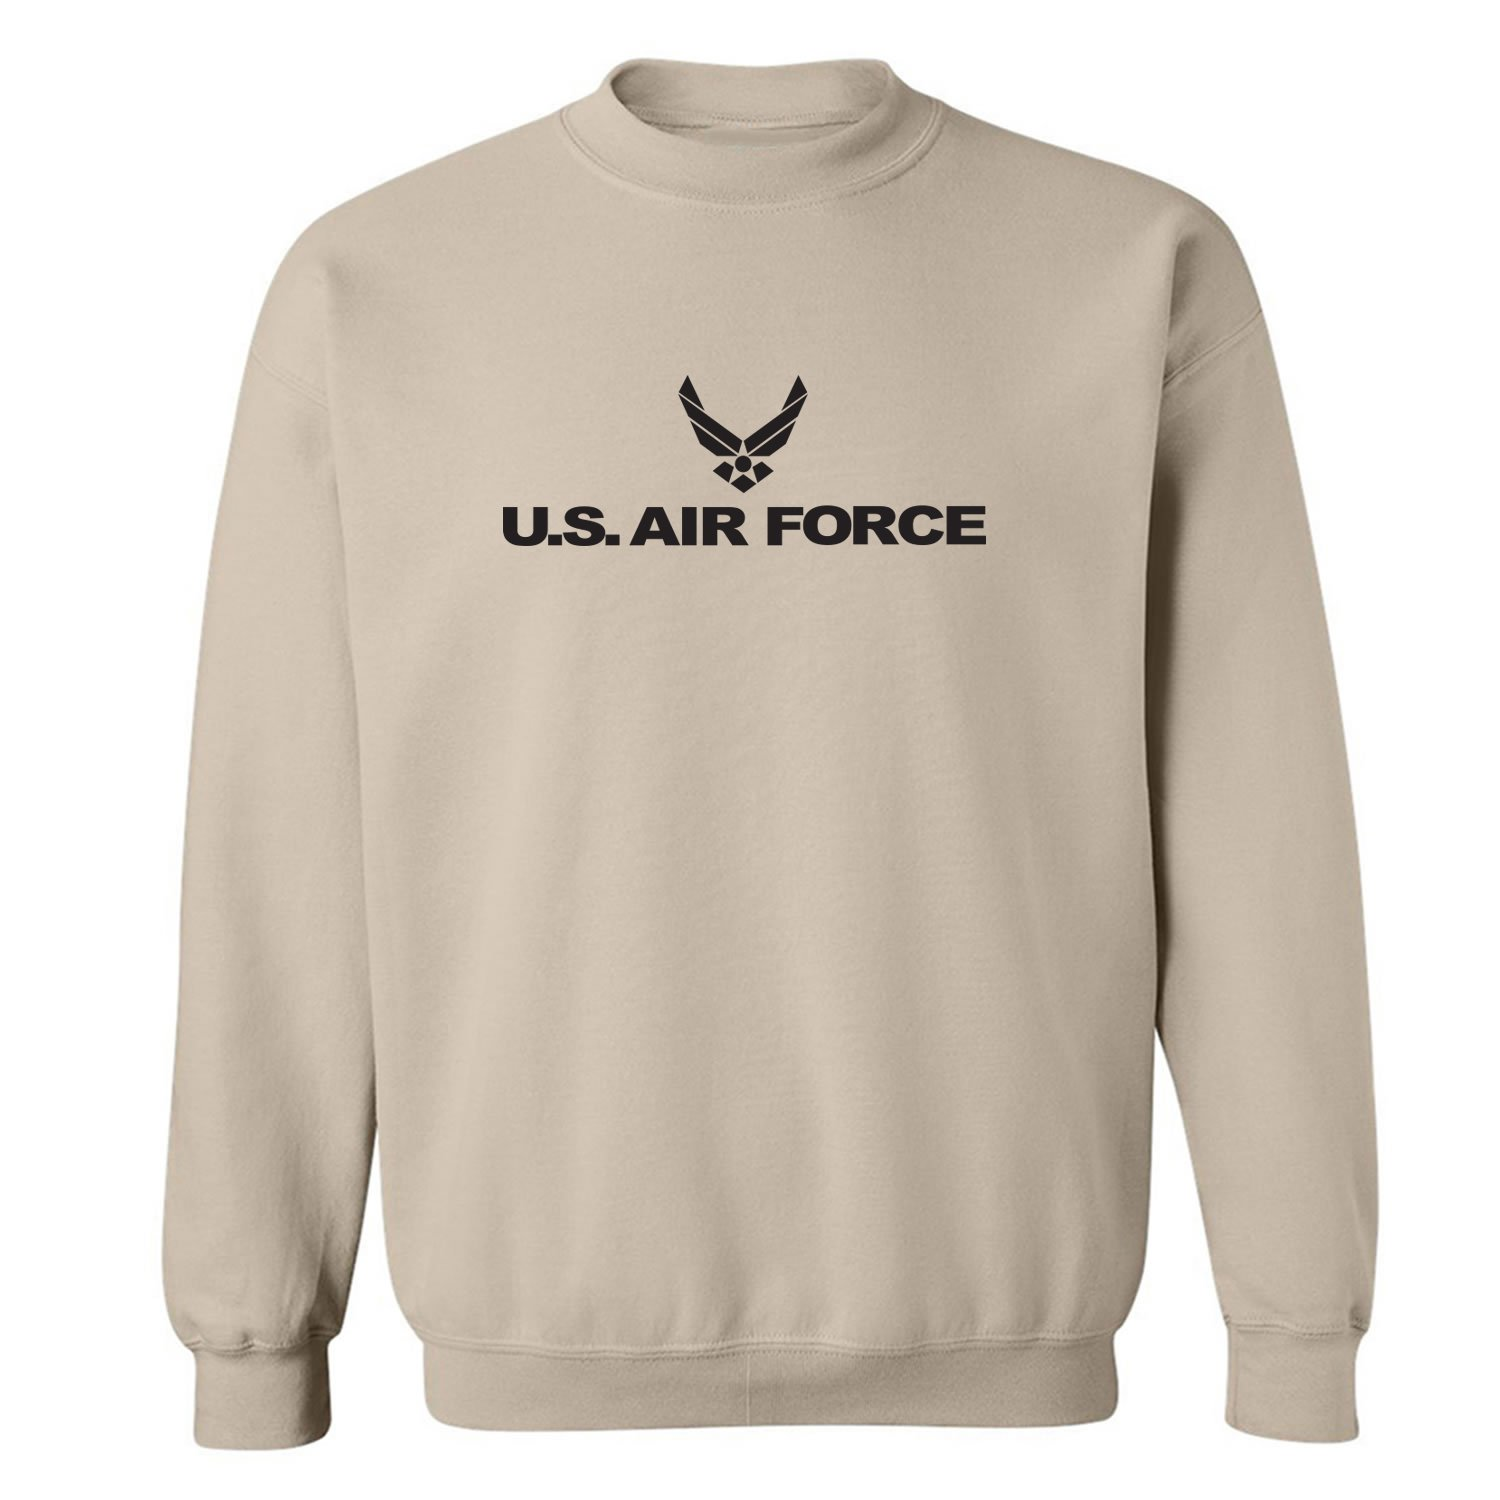 Air Force - Military Style Physical Training Crewneck Sweatshirt in Sand PA-1676